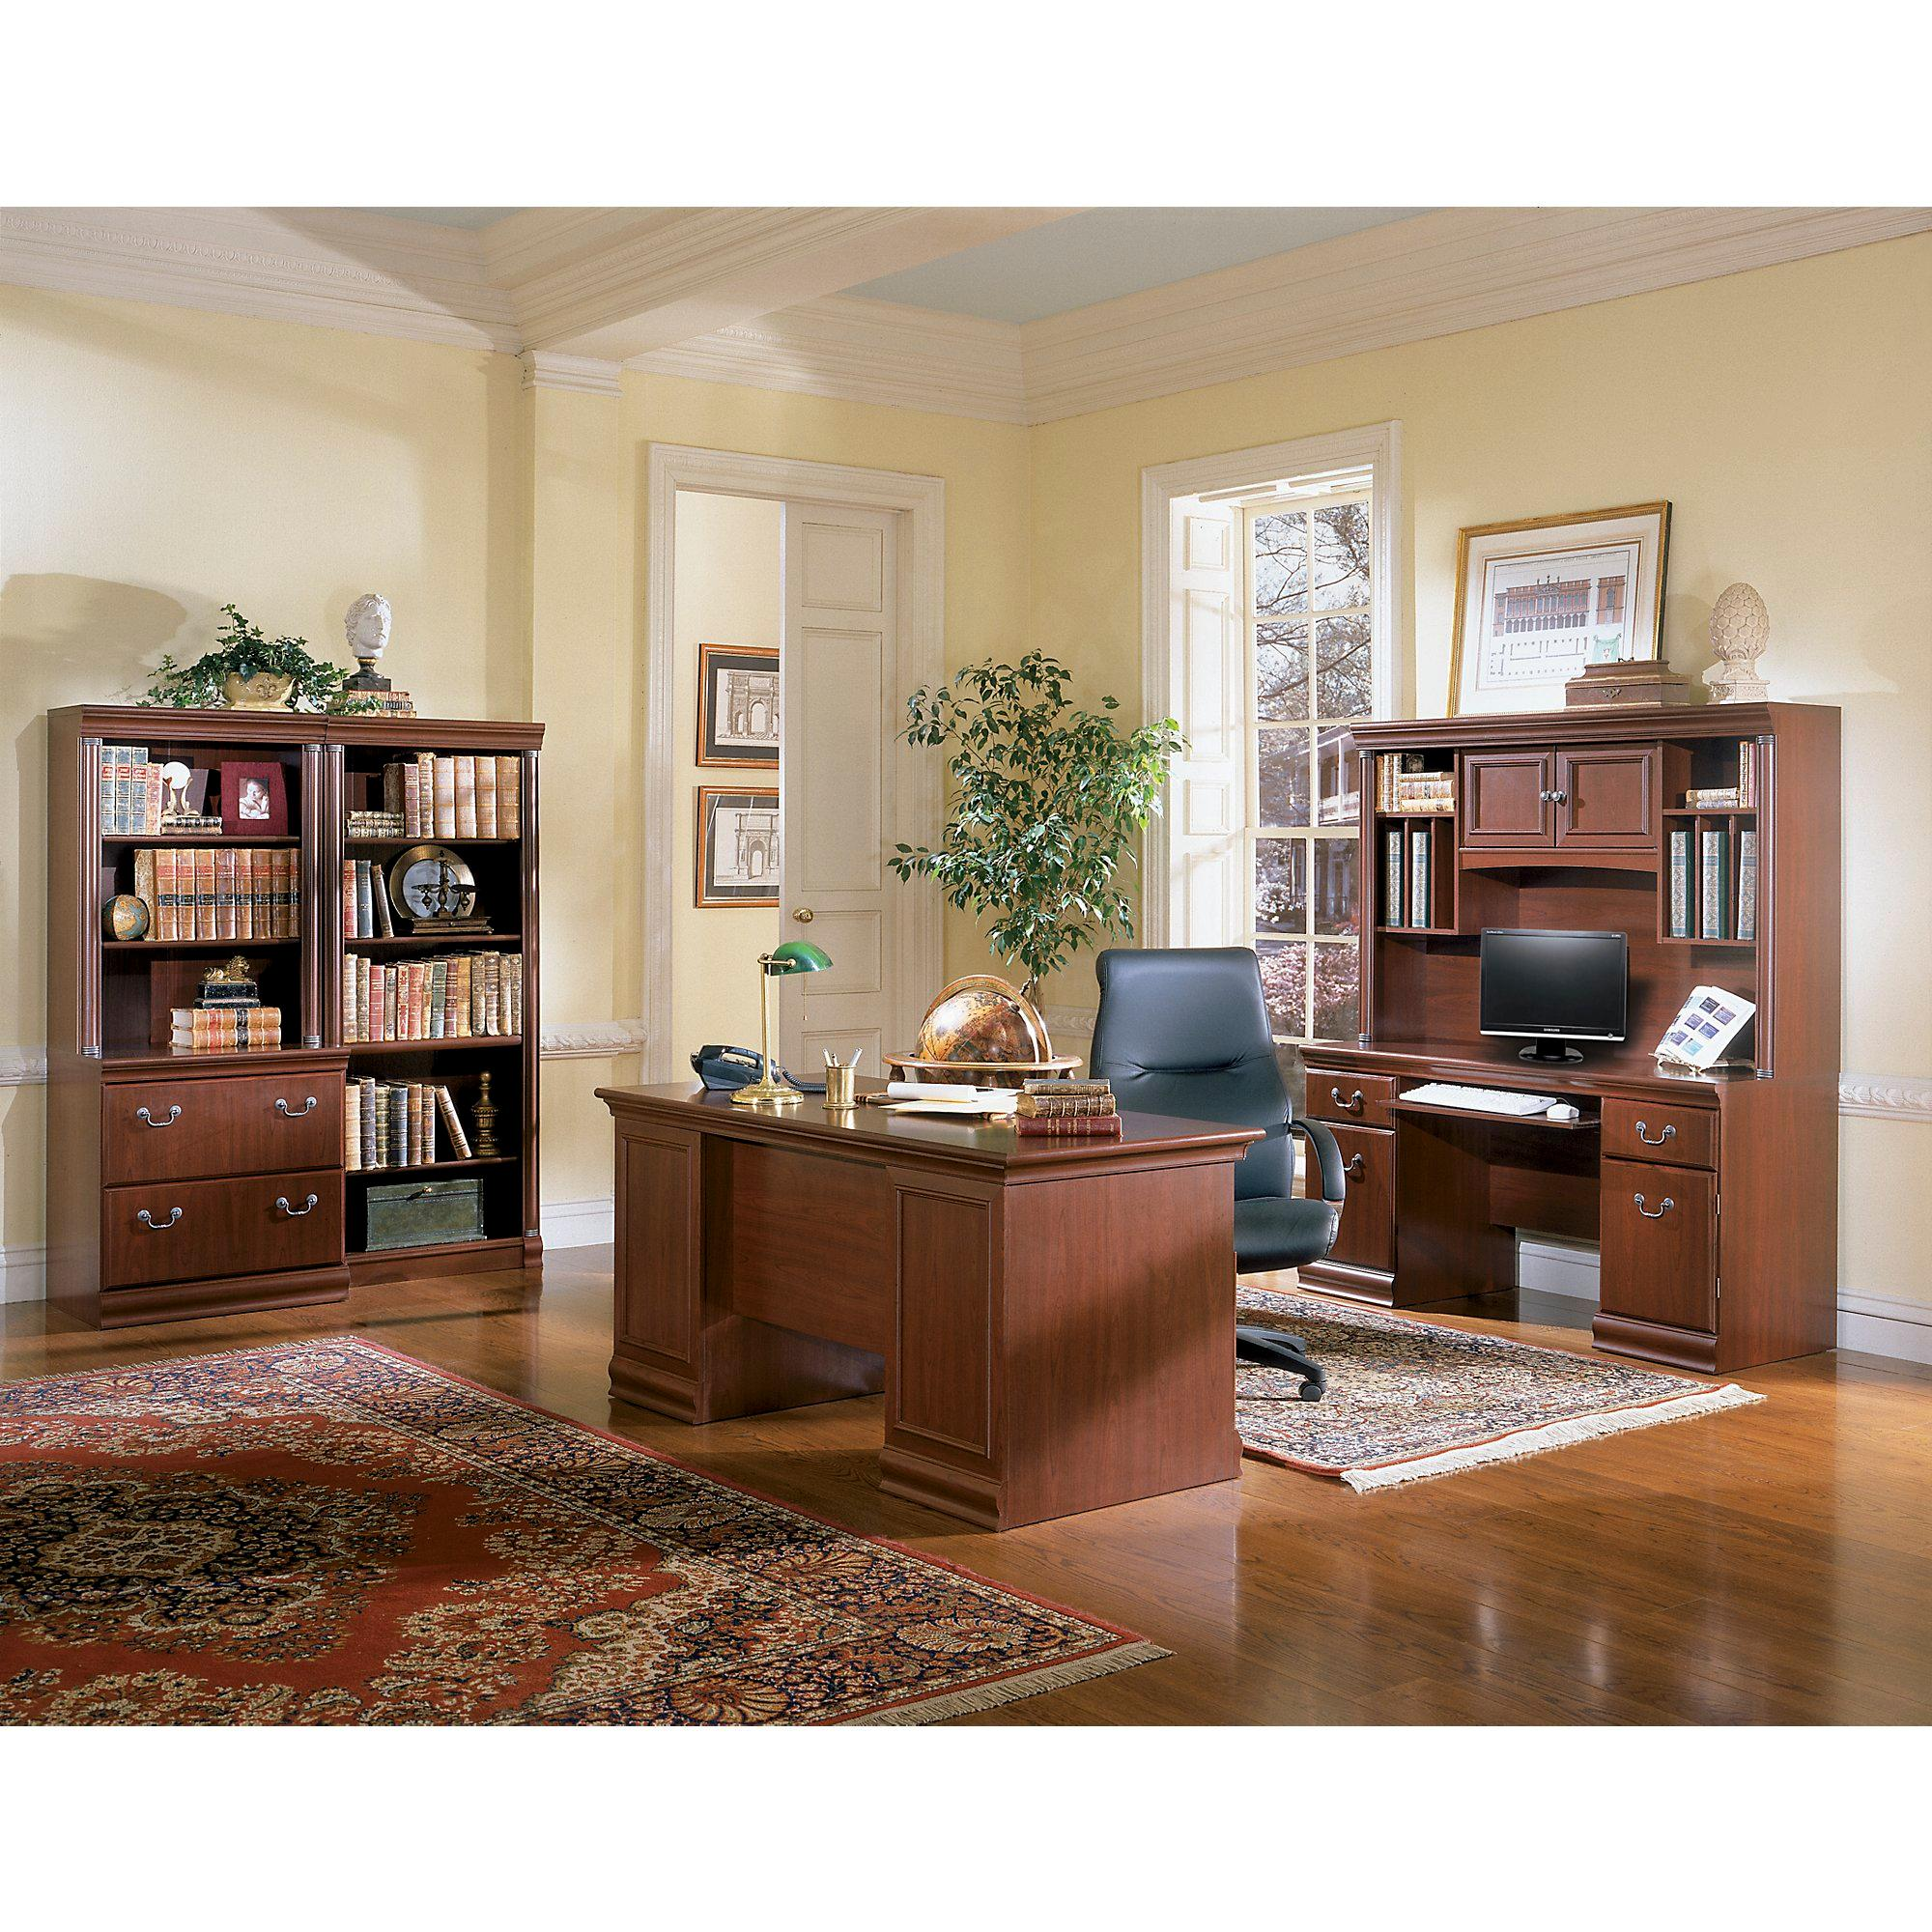 Bush Furniture, Birmingham, Birmingham Collection, Office Furniture,  Furniture, Home Office,